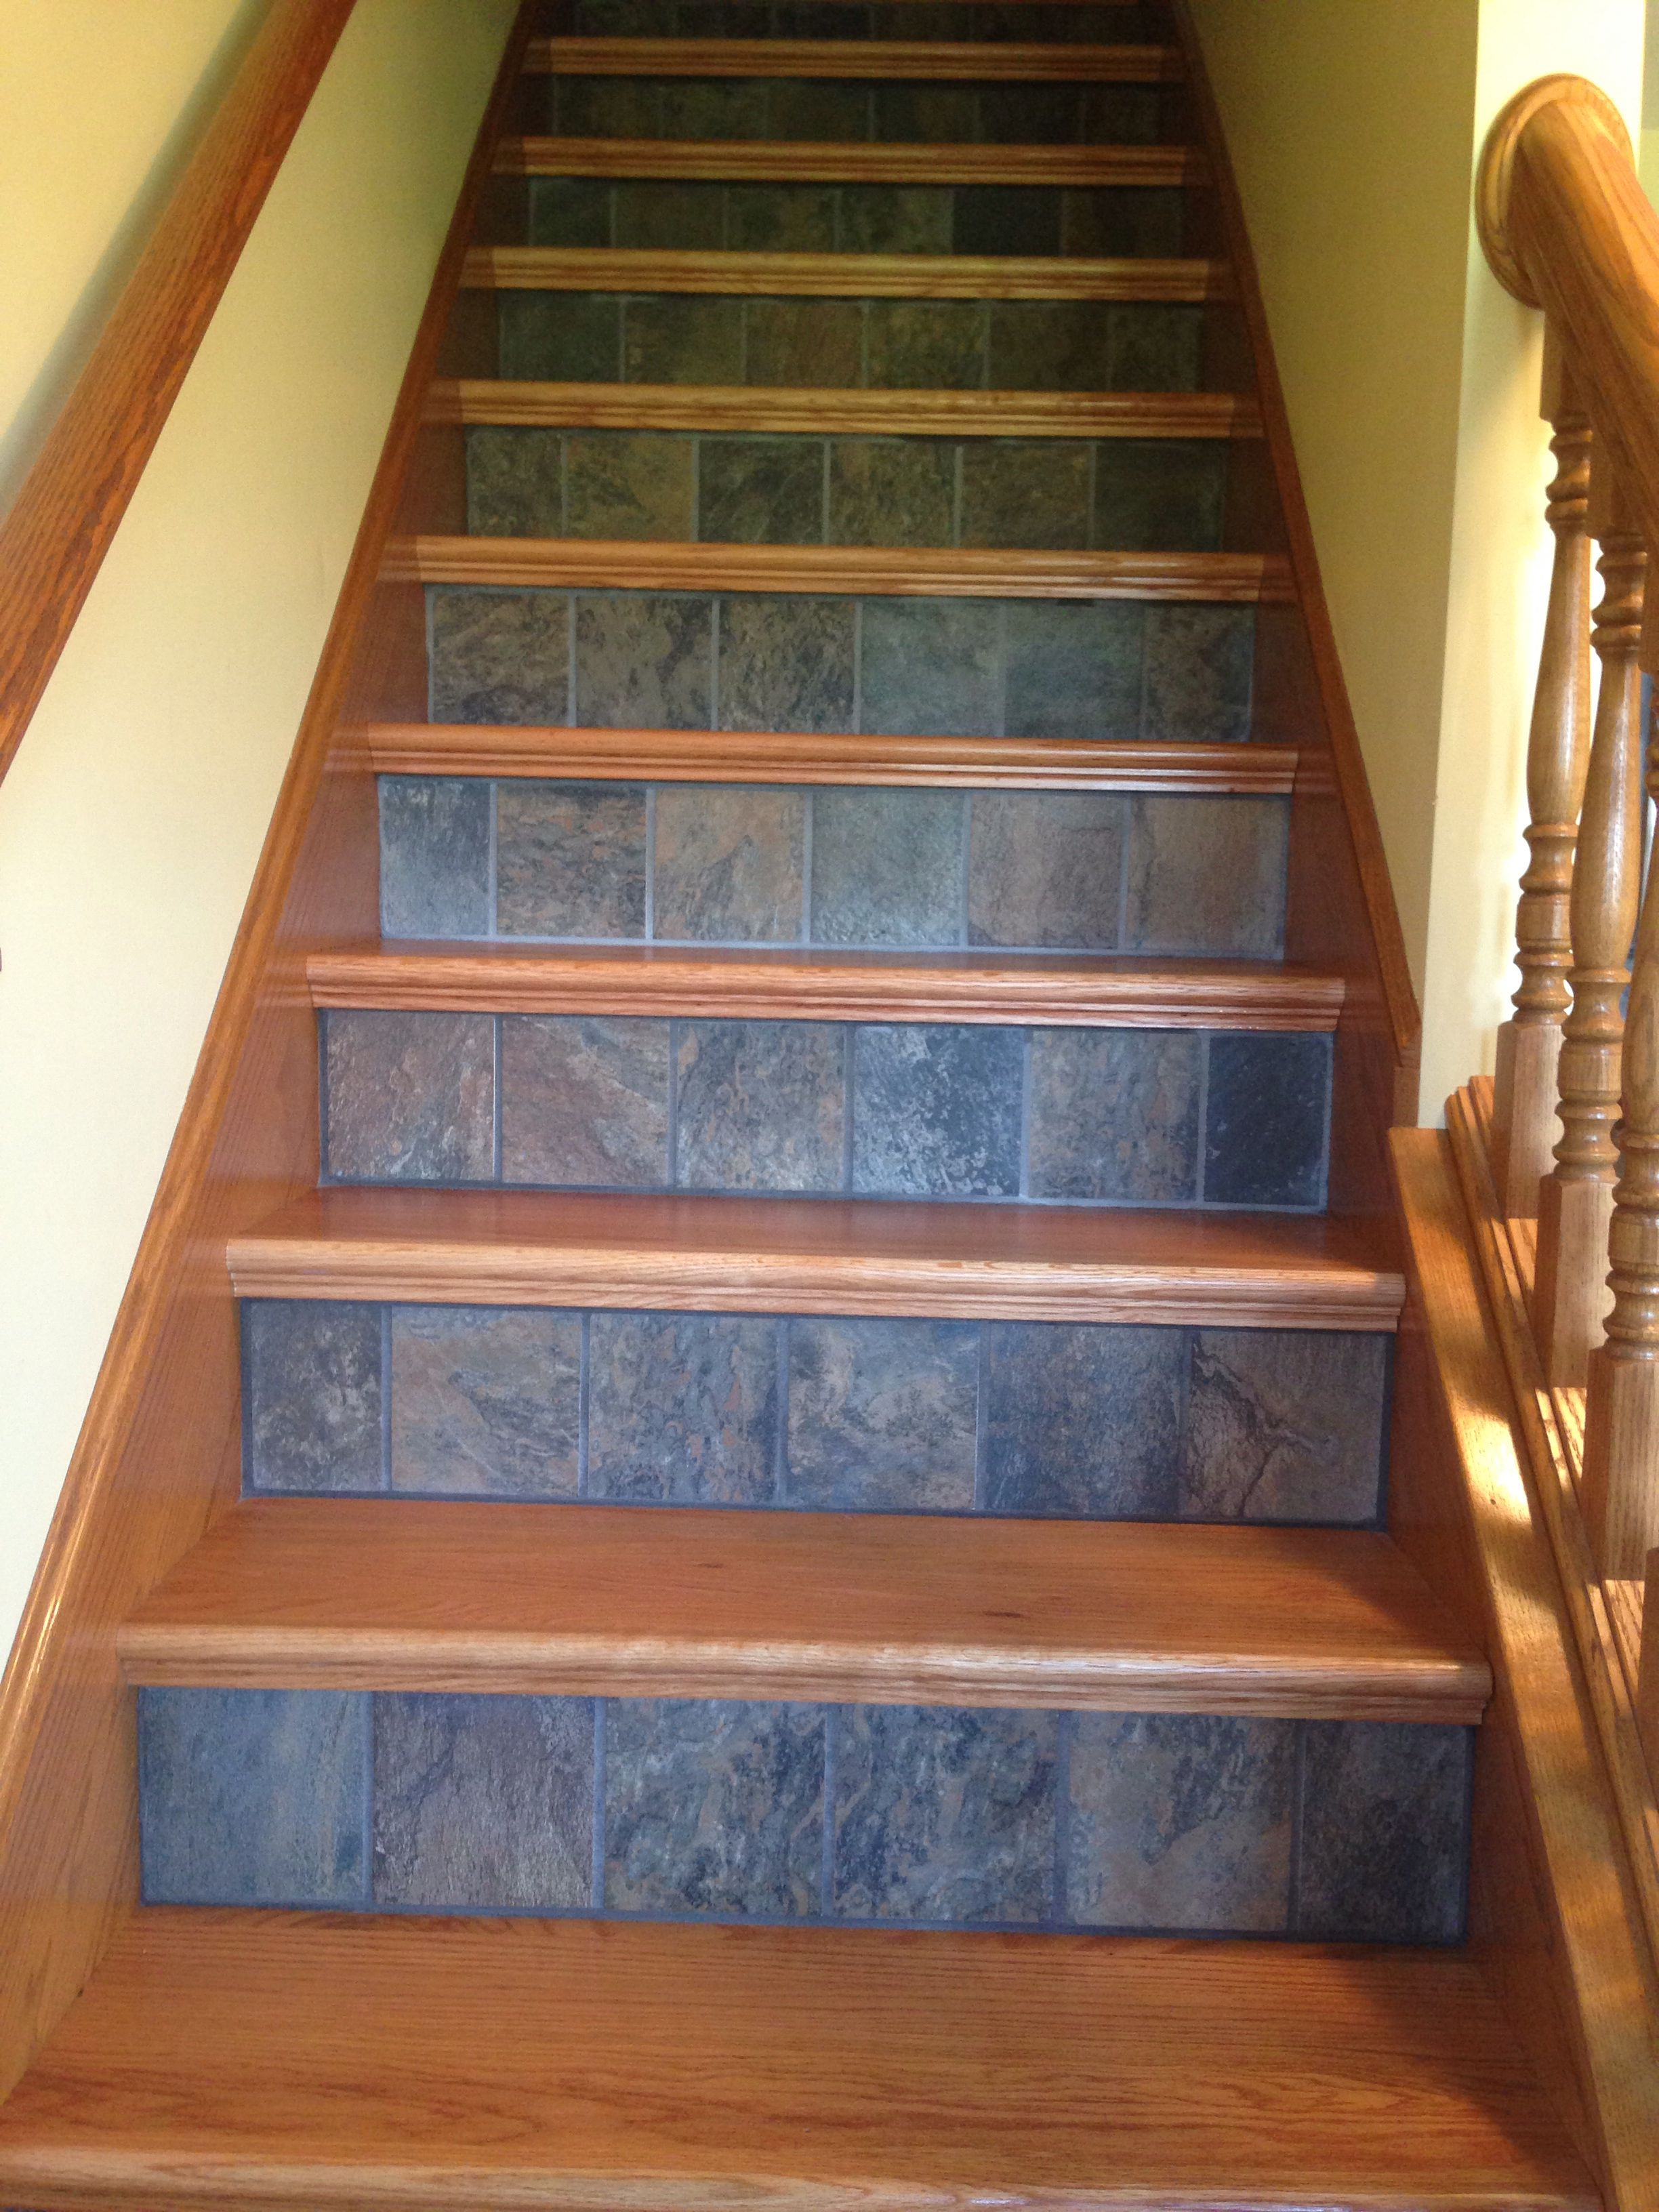 Replacing The Carpet On Stairs With A Fresh Look With Images Home Remodeling Diy Stairs